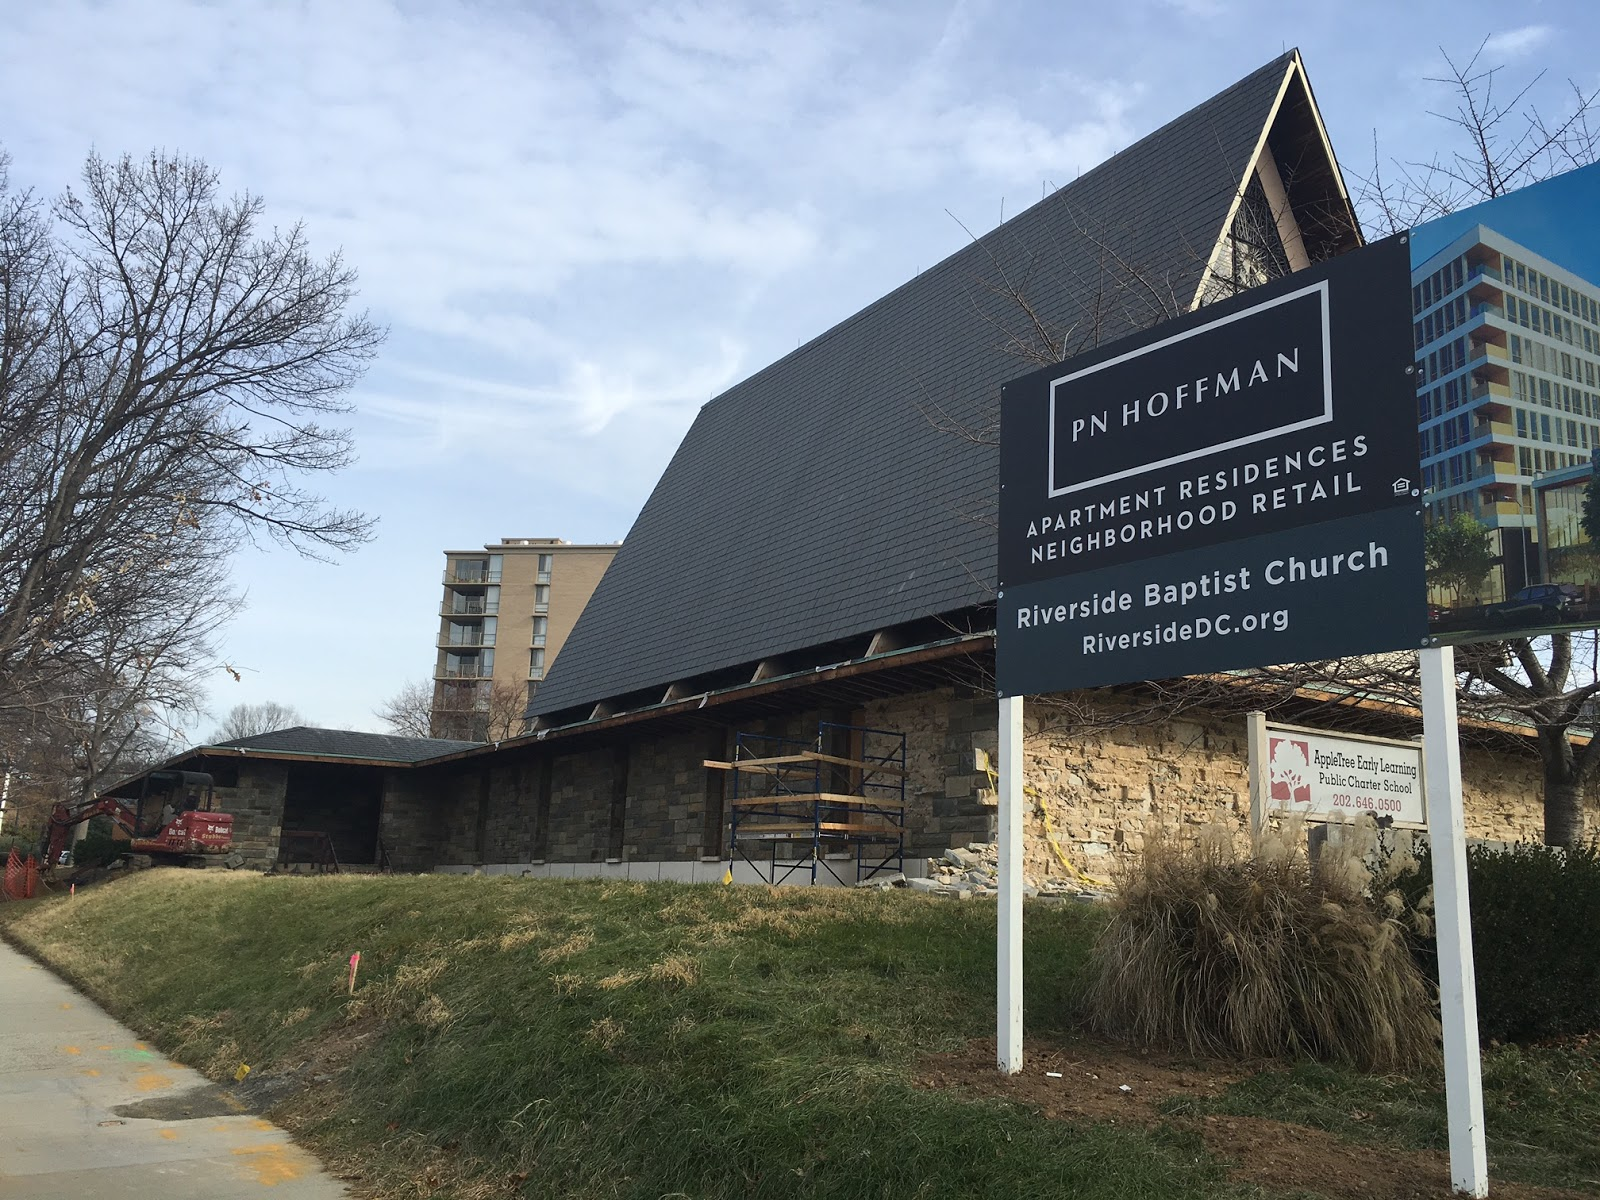 Part Of The Exterior Of Riverside Baptist Church Is Being Removed In  Preparation For Demolition (a Demolition Permit Was Submitted Back In  September).